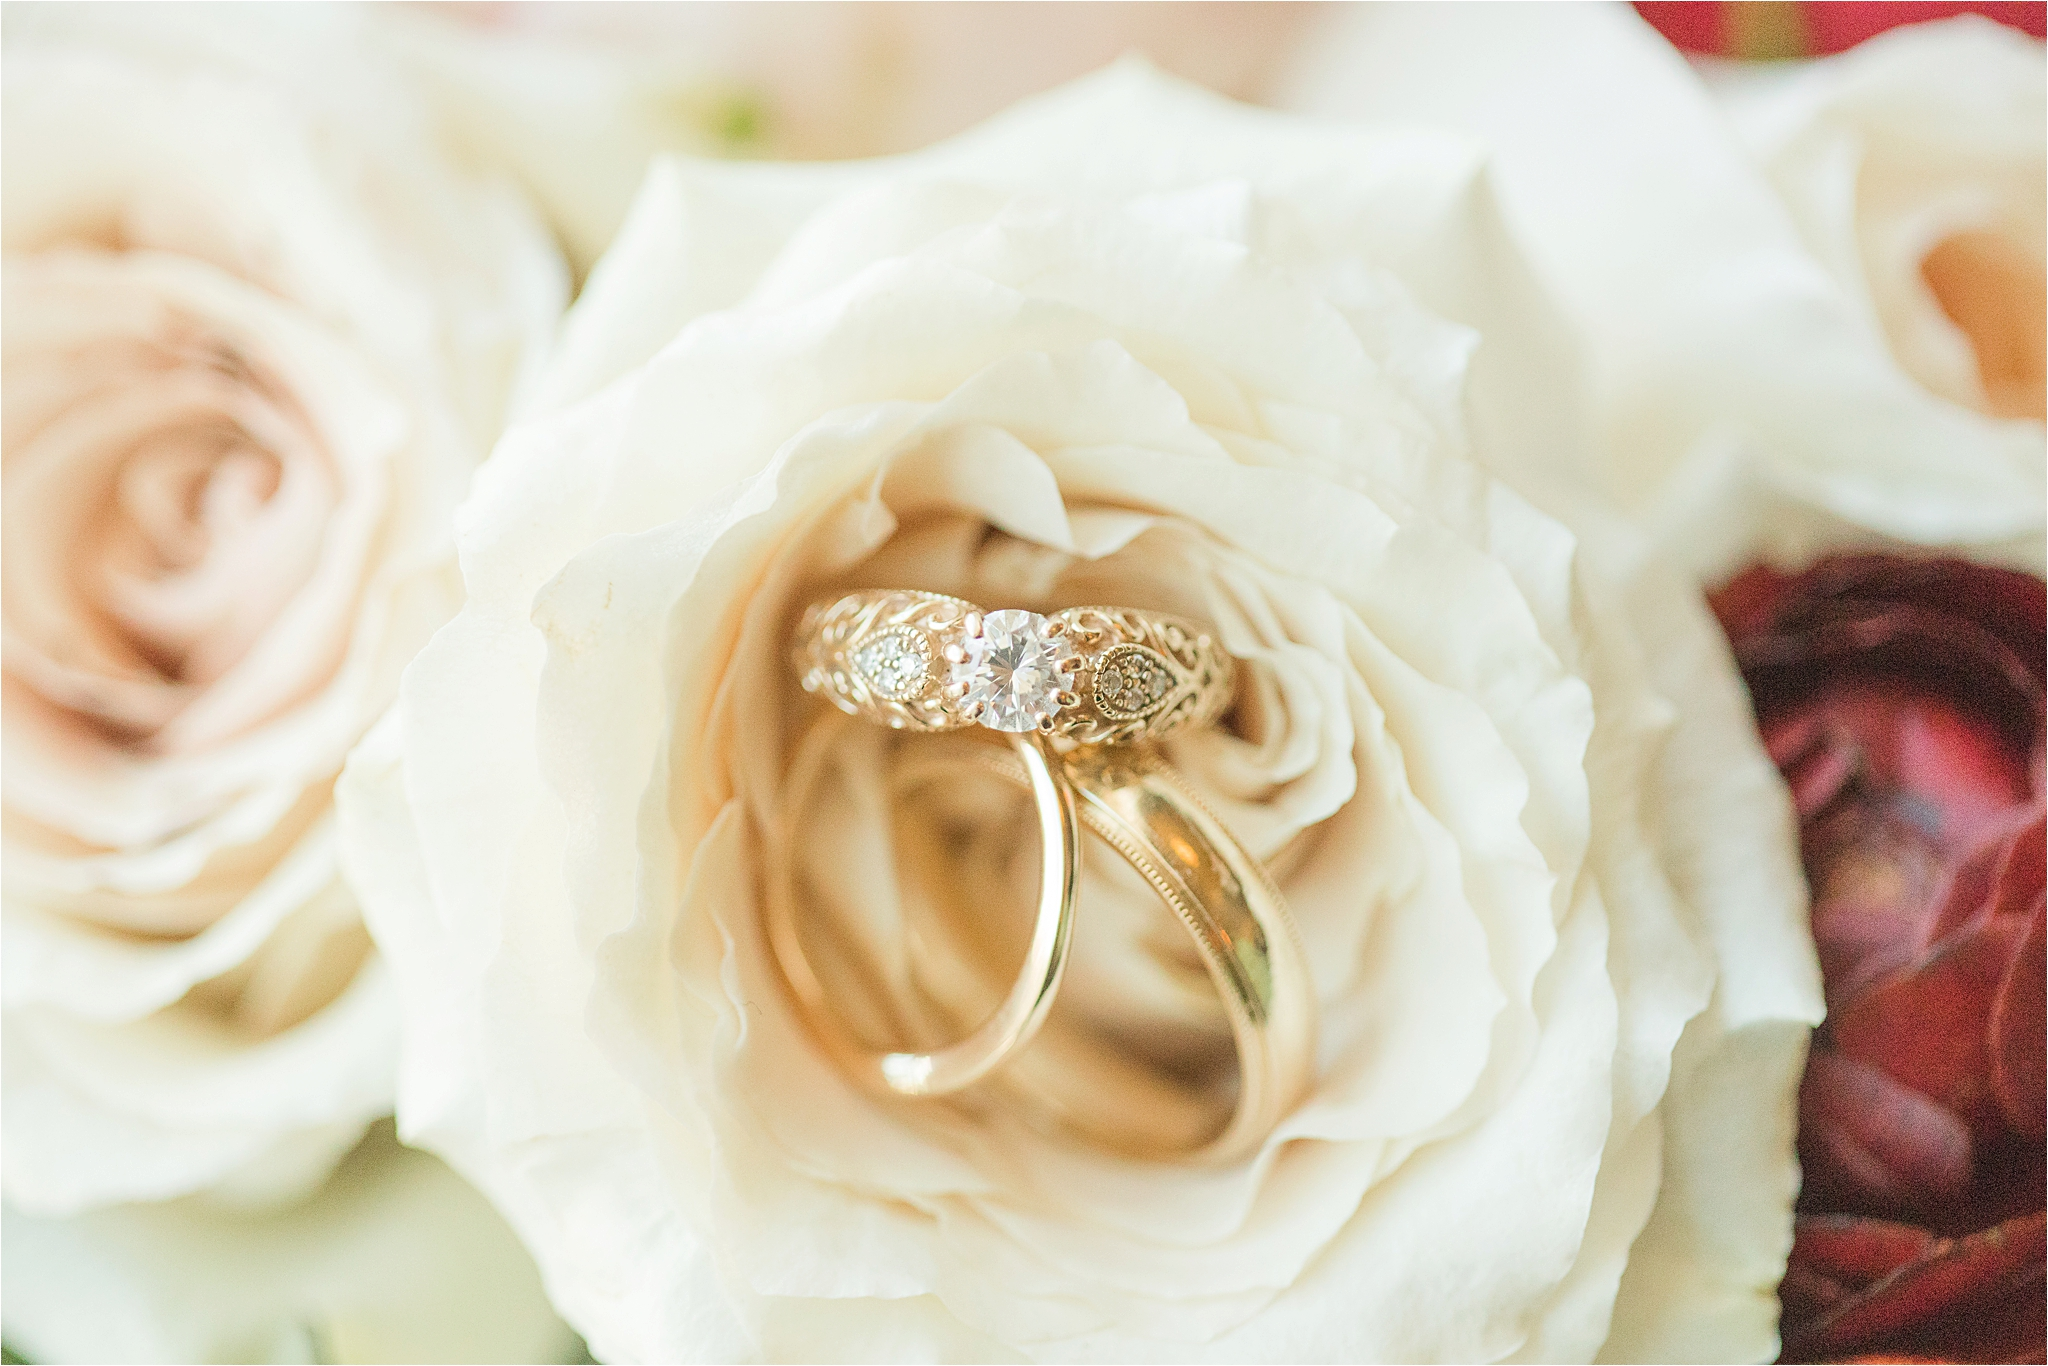 ornate-wedding-engagement-rings-yellow-gold-antique-unique-round-cut-diamond-vine-leaves